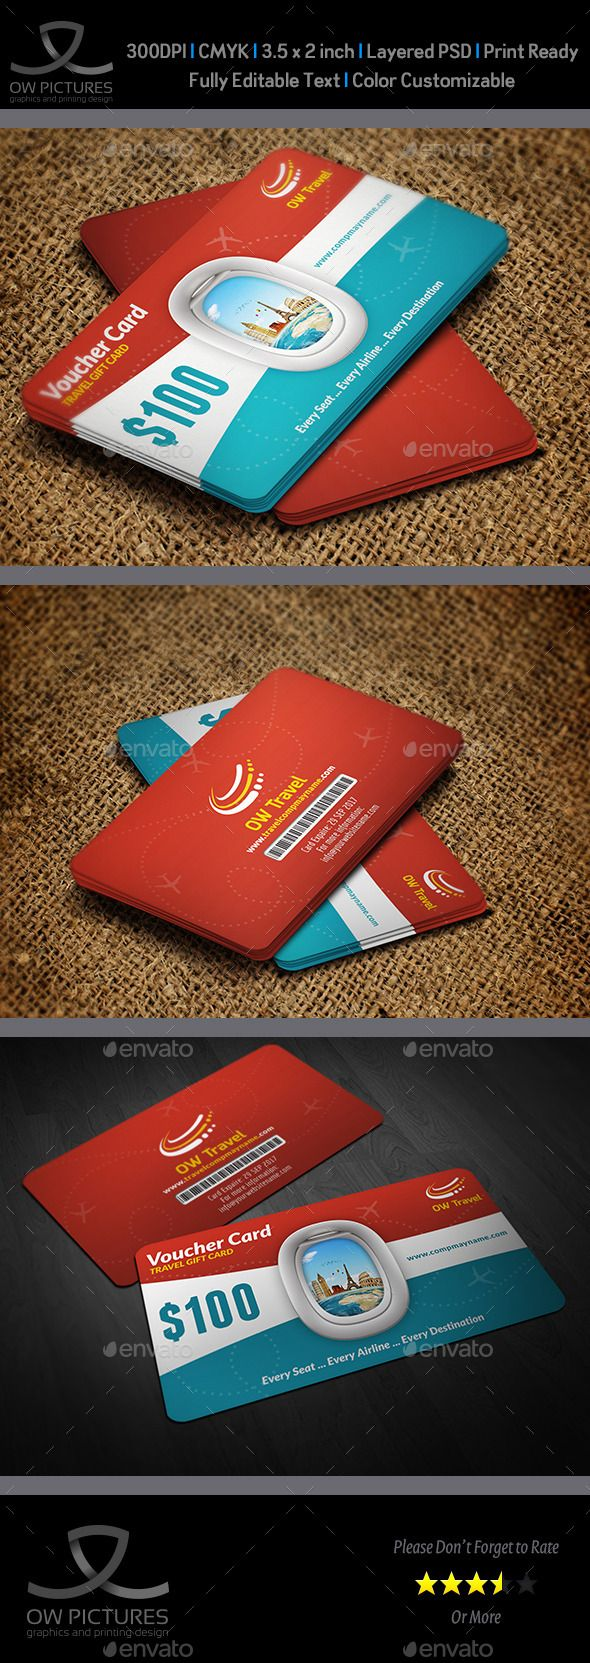 77 best gift cards images on pinterest brand identity travel gift voucher card template vol17 xflitez Images